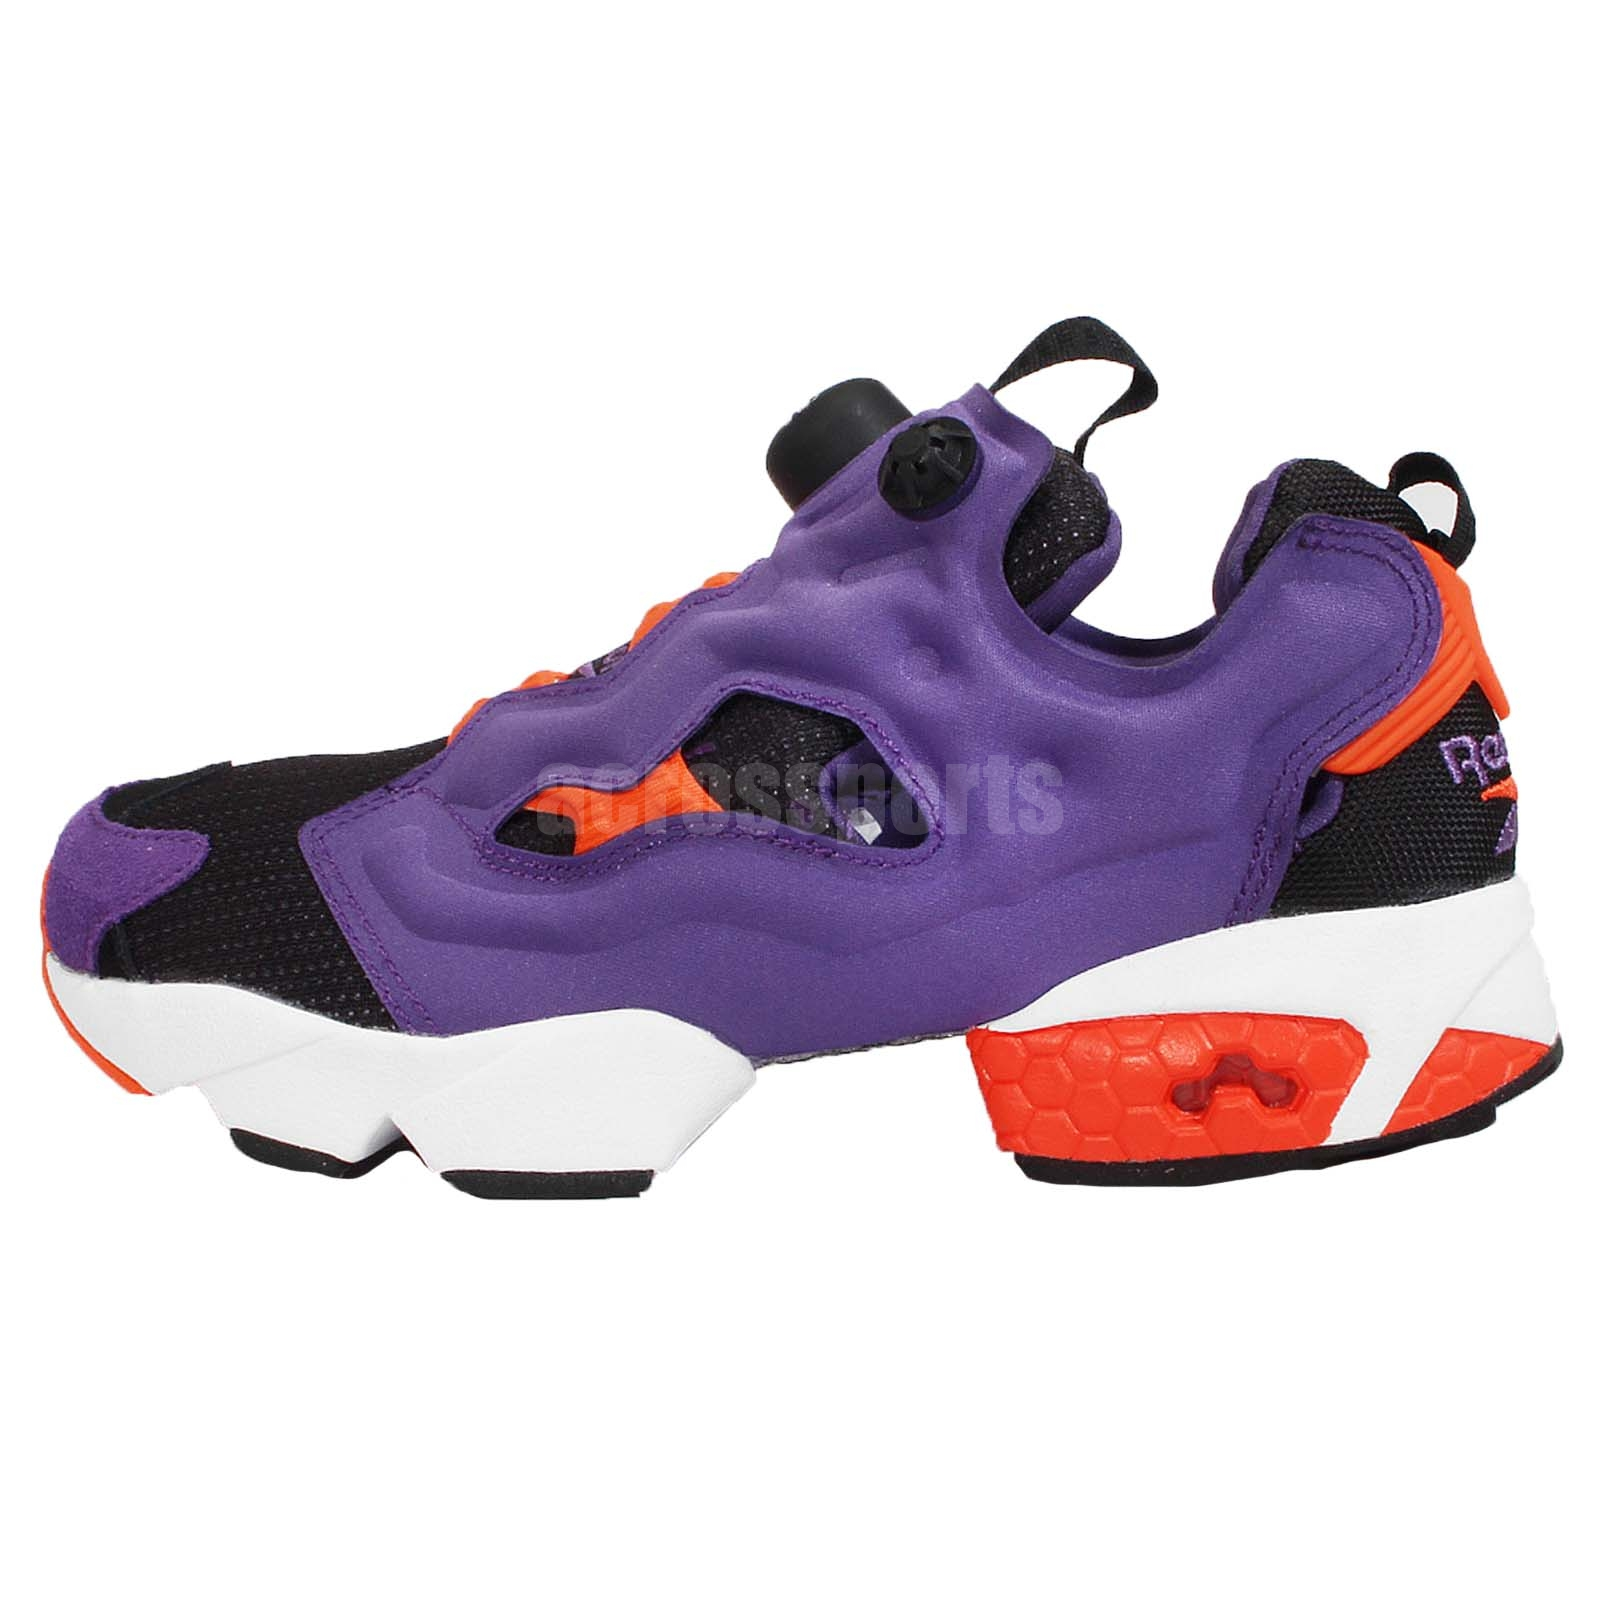 reebok insta pump fury sp og mens casual shoes sneakers trainers pick 1. Black Bedroom Furniture Sets. Home Design Ideas